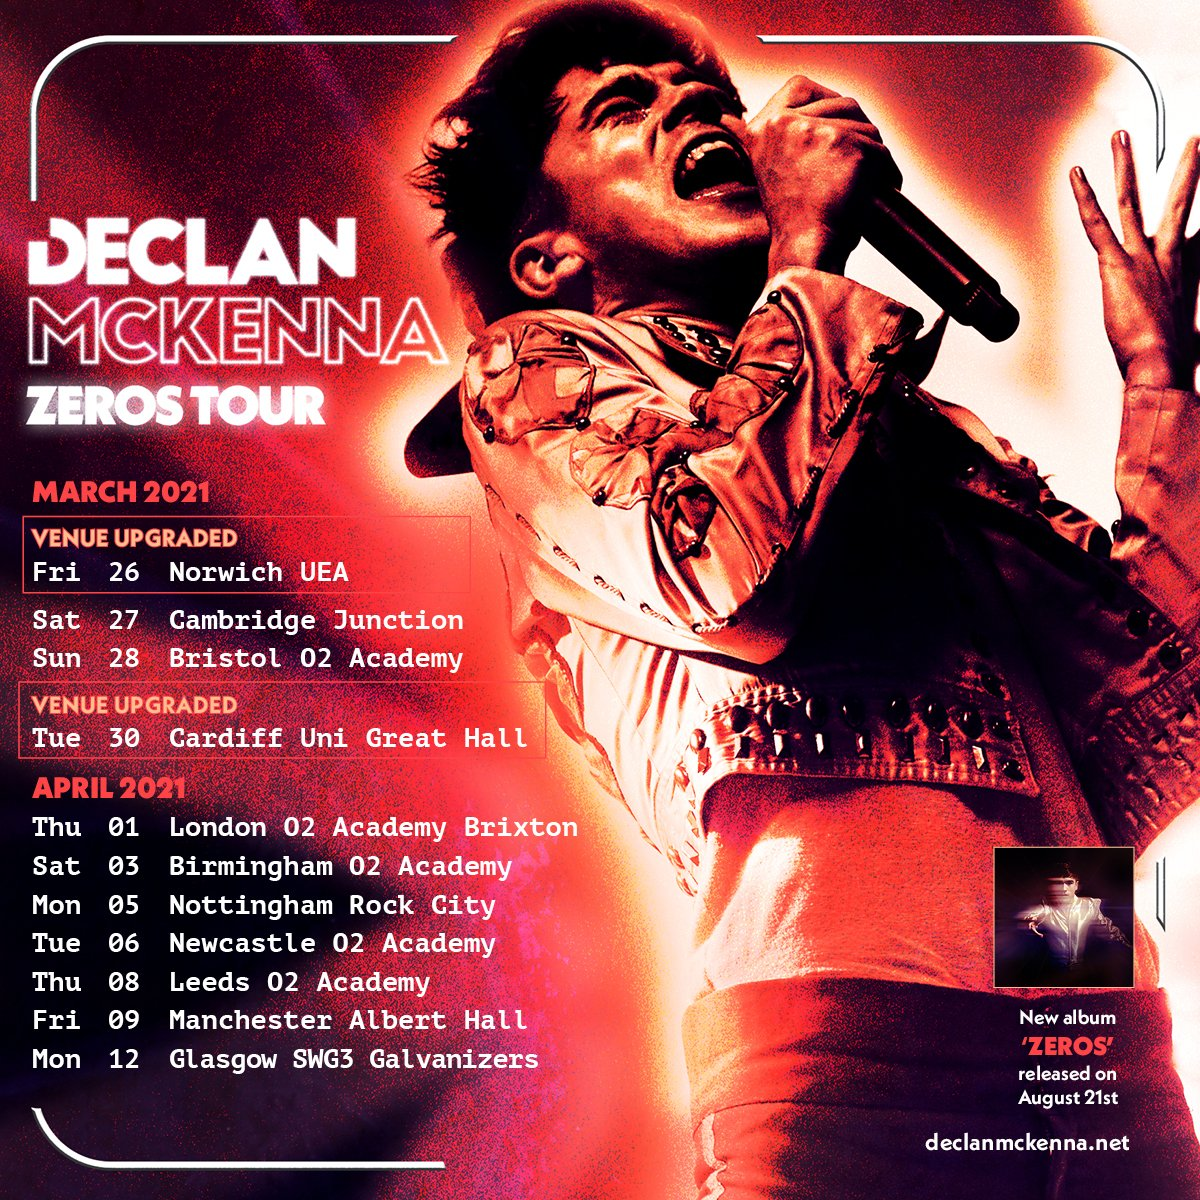 Declan McKenna Tickets For Spring 2021 UK And Ireland Tour On Sale 9am Today 2